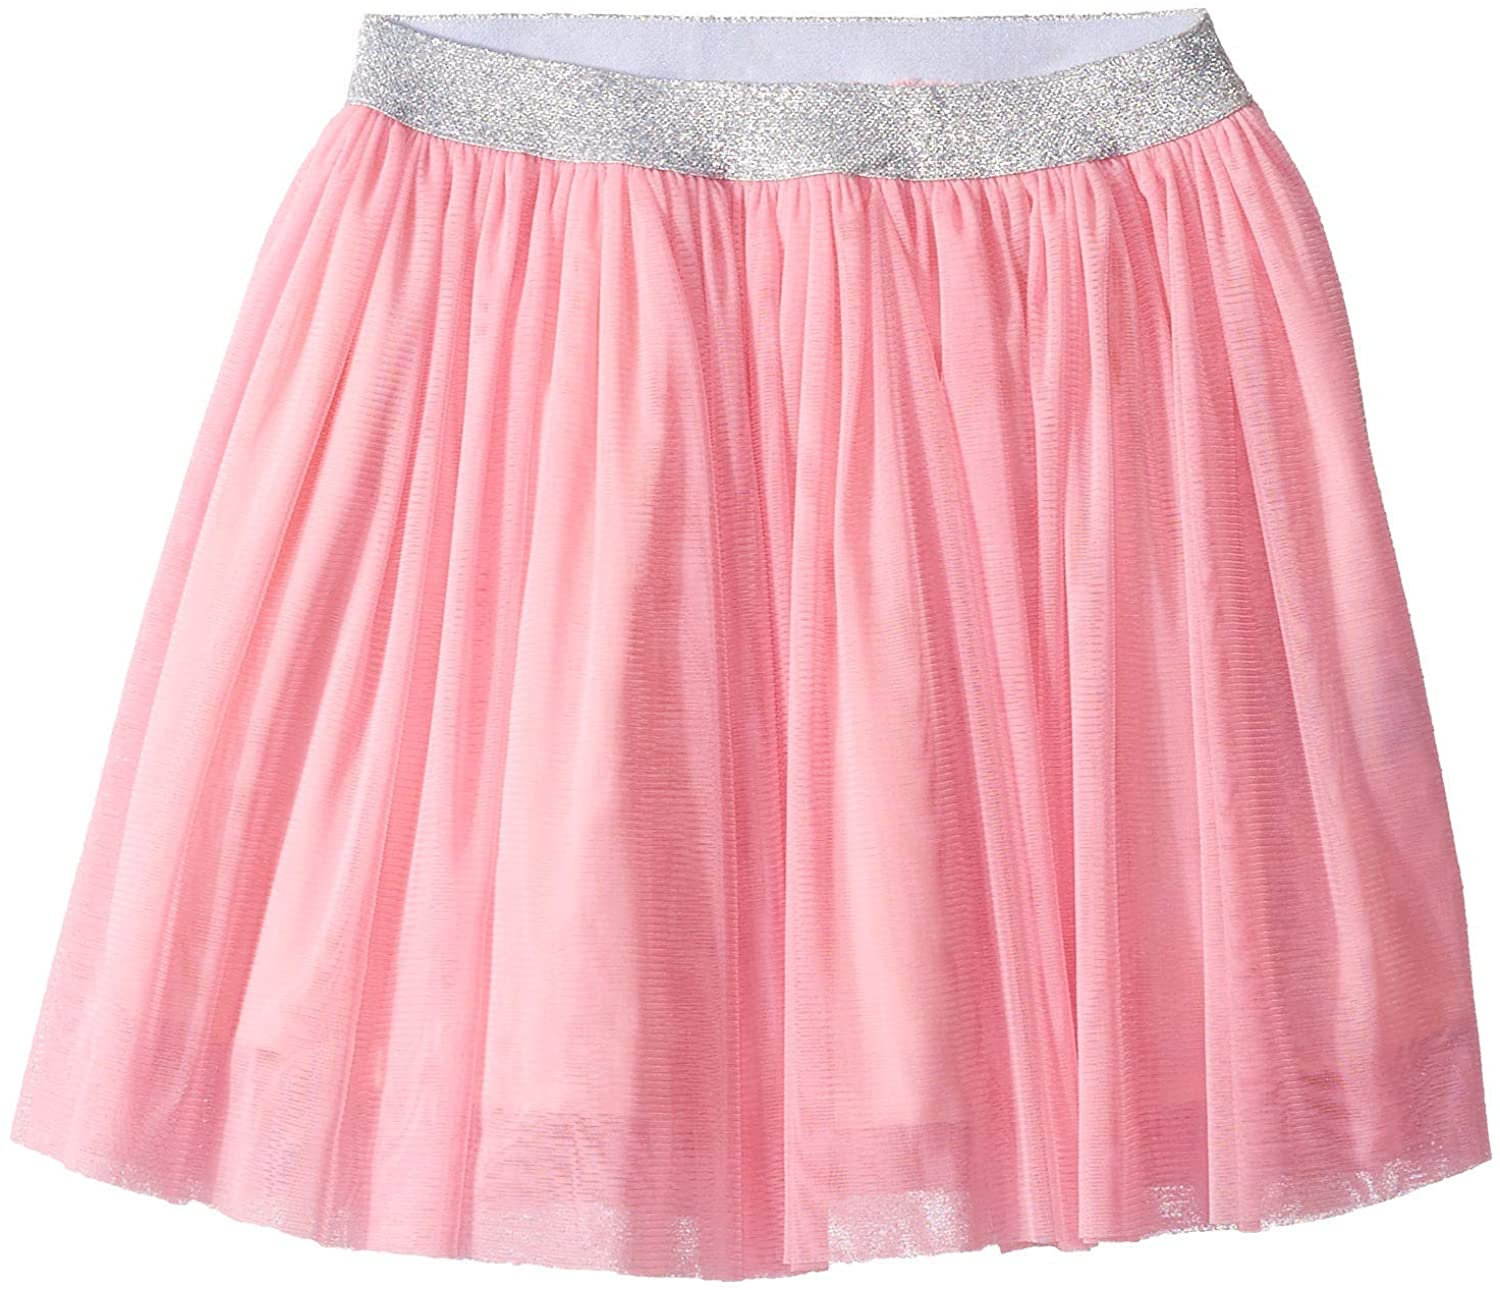 Toobydoo Baby Girl's Tulle Skirt (Toddler/Little Kids/Big Kids)